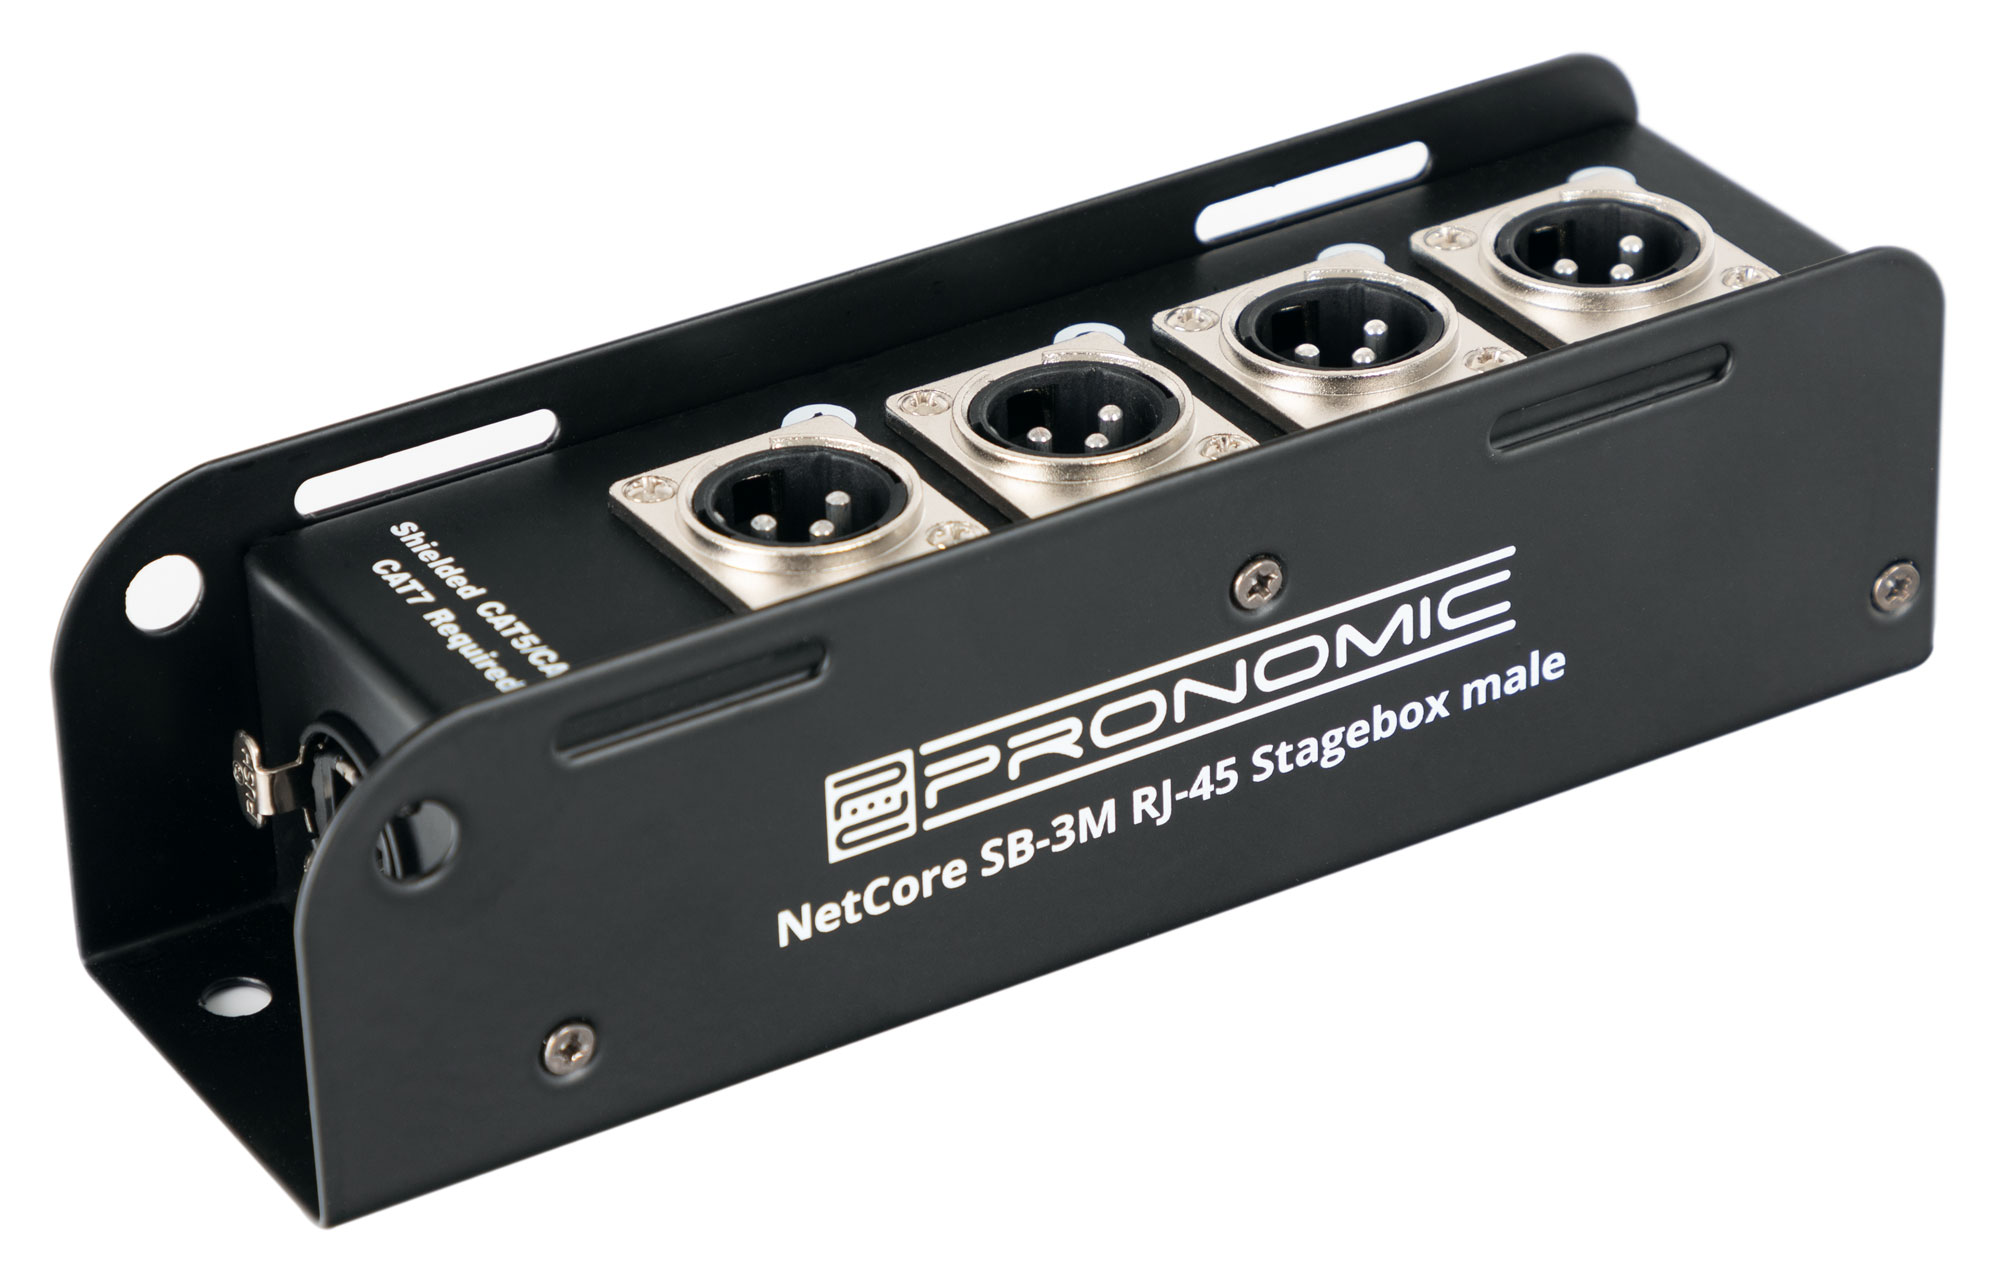 Diboxen - Pronomic NetCore SB 3M Multicore Stagebox male - Onlineshop Musikhaus Kirstein